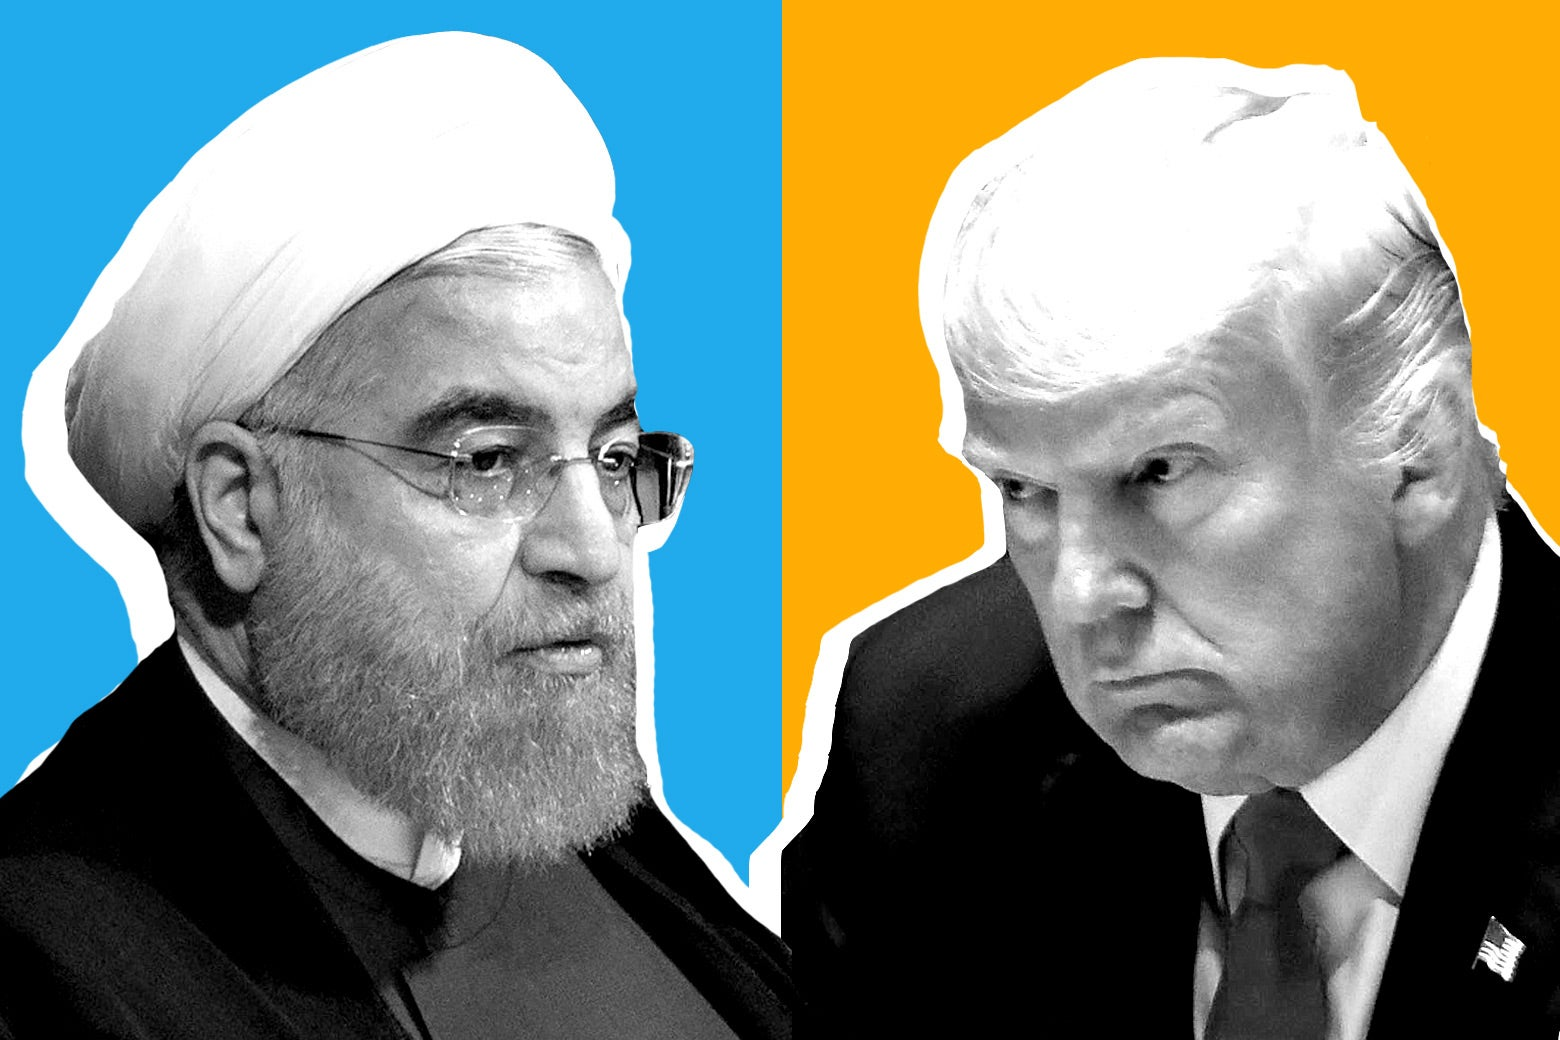 Hassan Rouhani and Donald Trump.